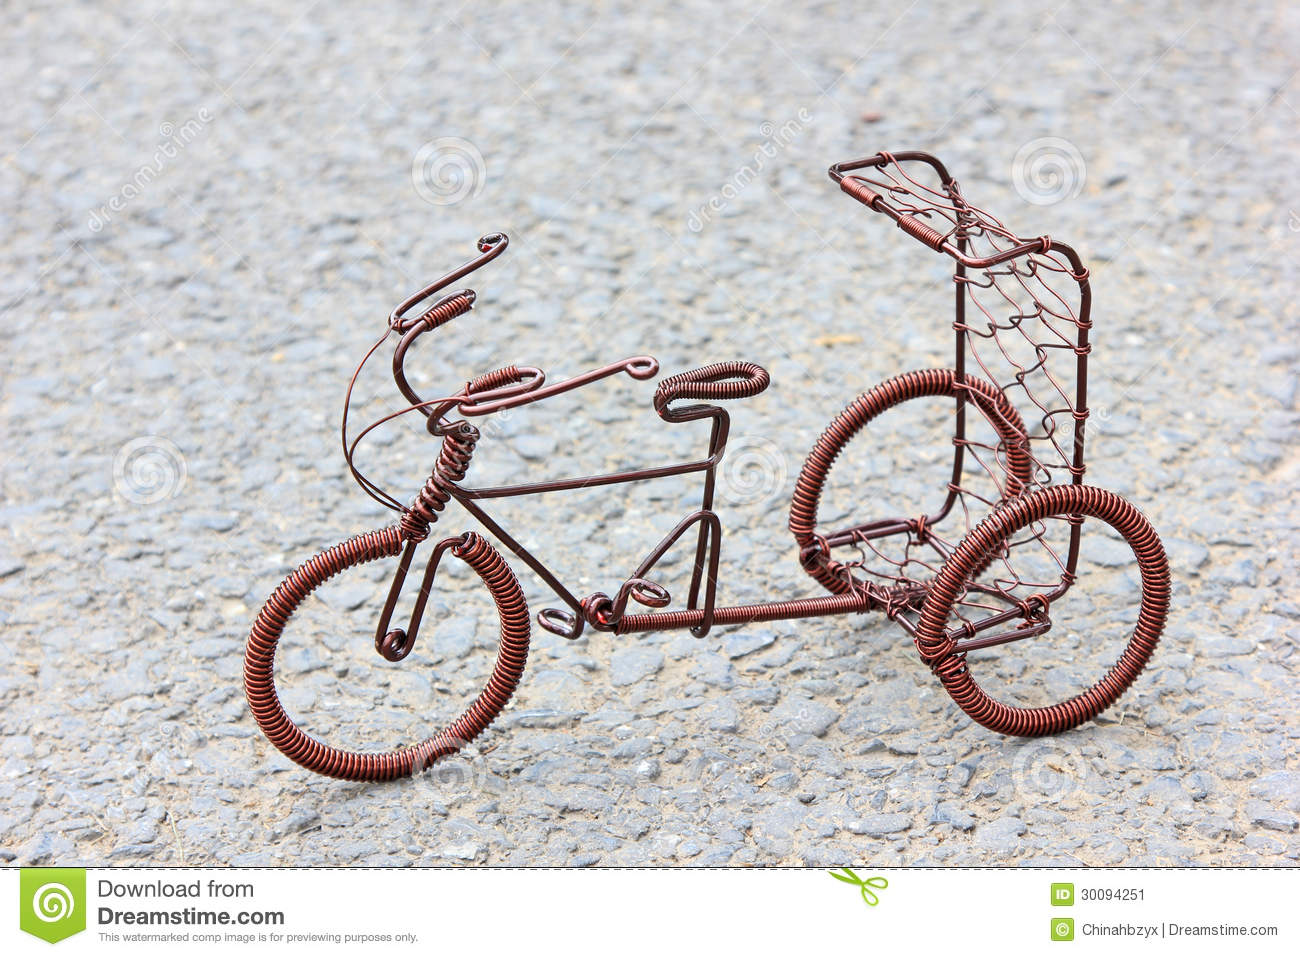 Toy Crafts Bicycle Made Of Copper Wire Stock Image Image Of Materials Rickshaws 30094251